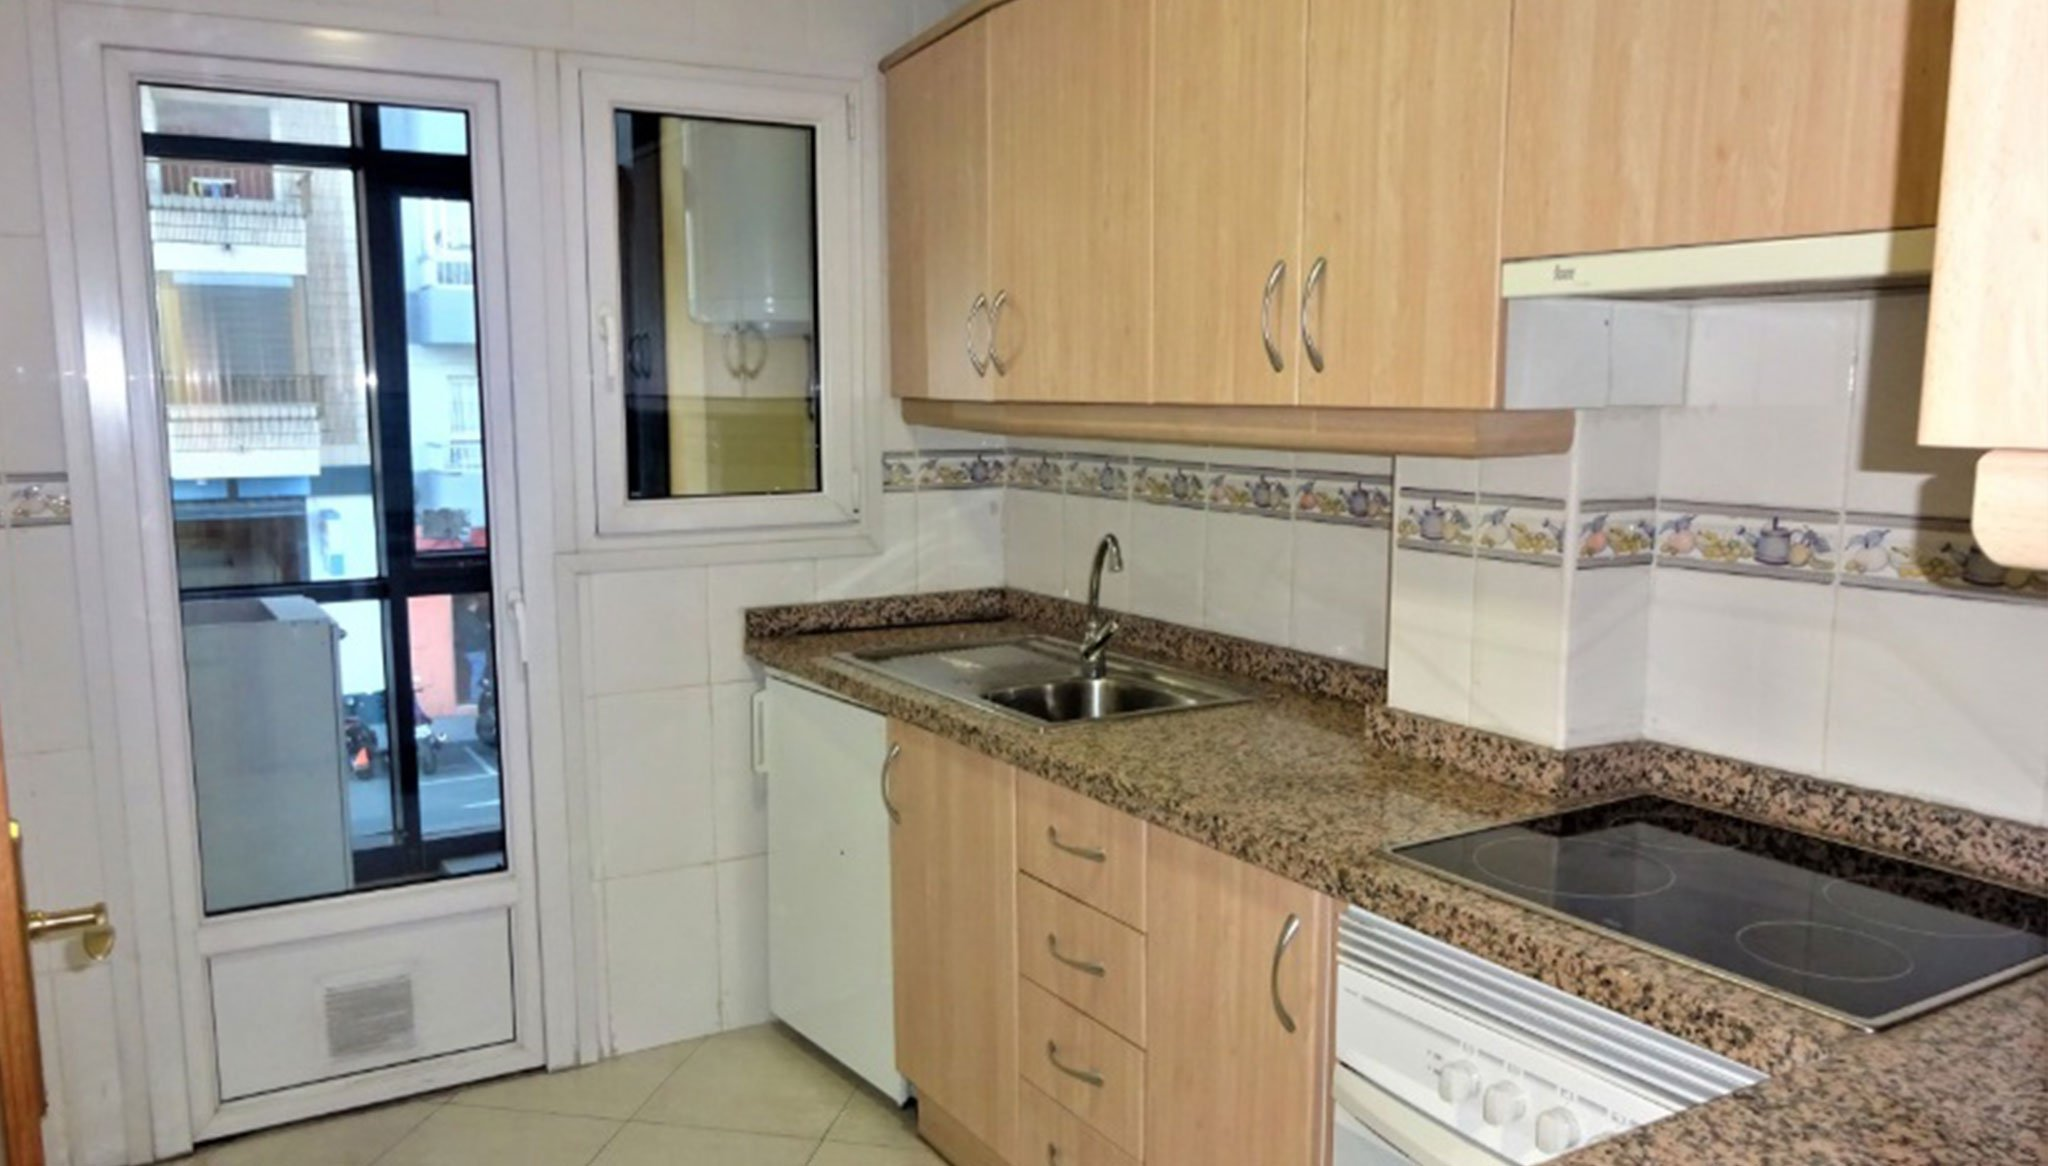 Kitchen of an apartment for sale in Dénia - Singular Homes